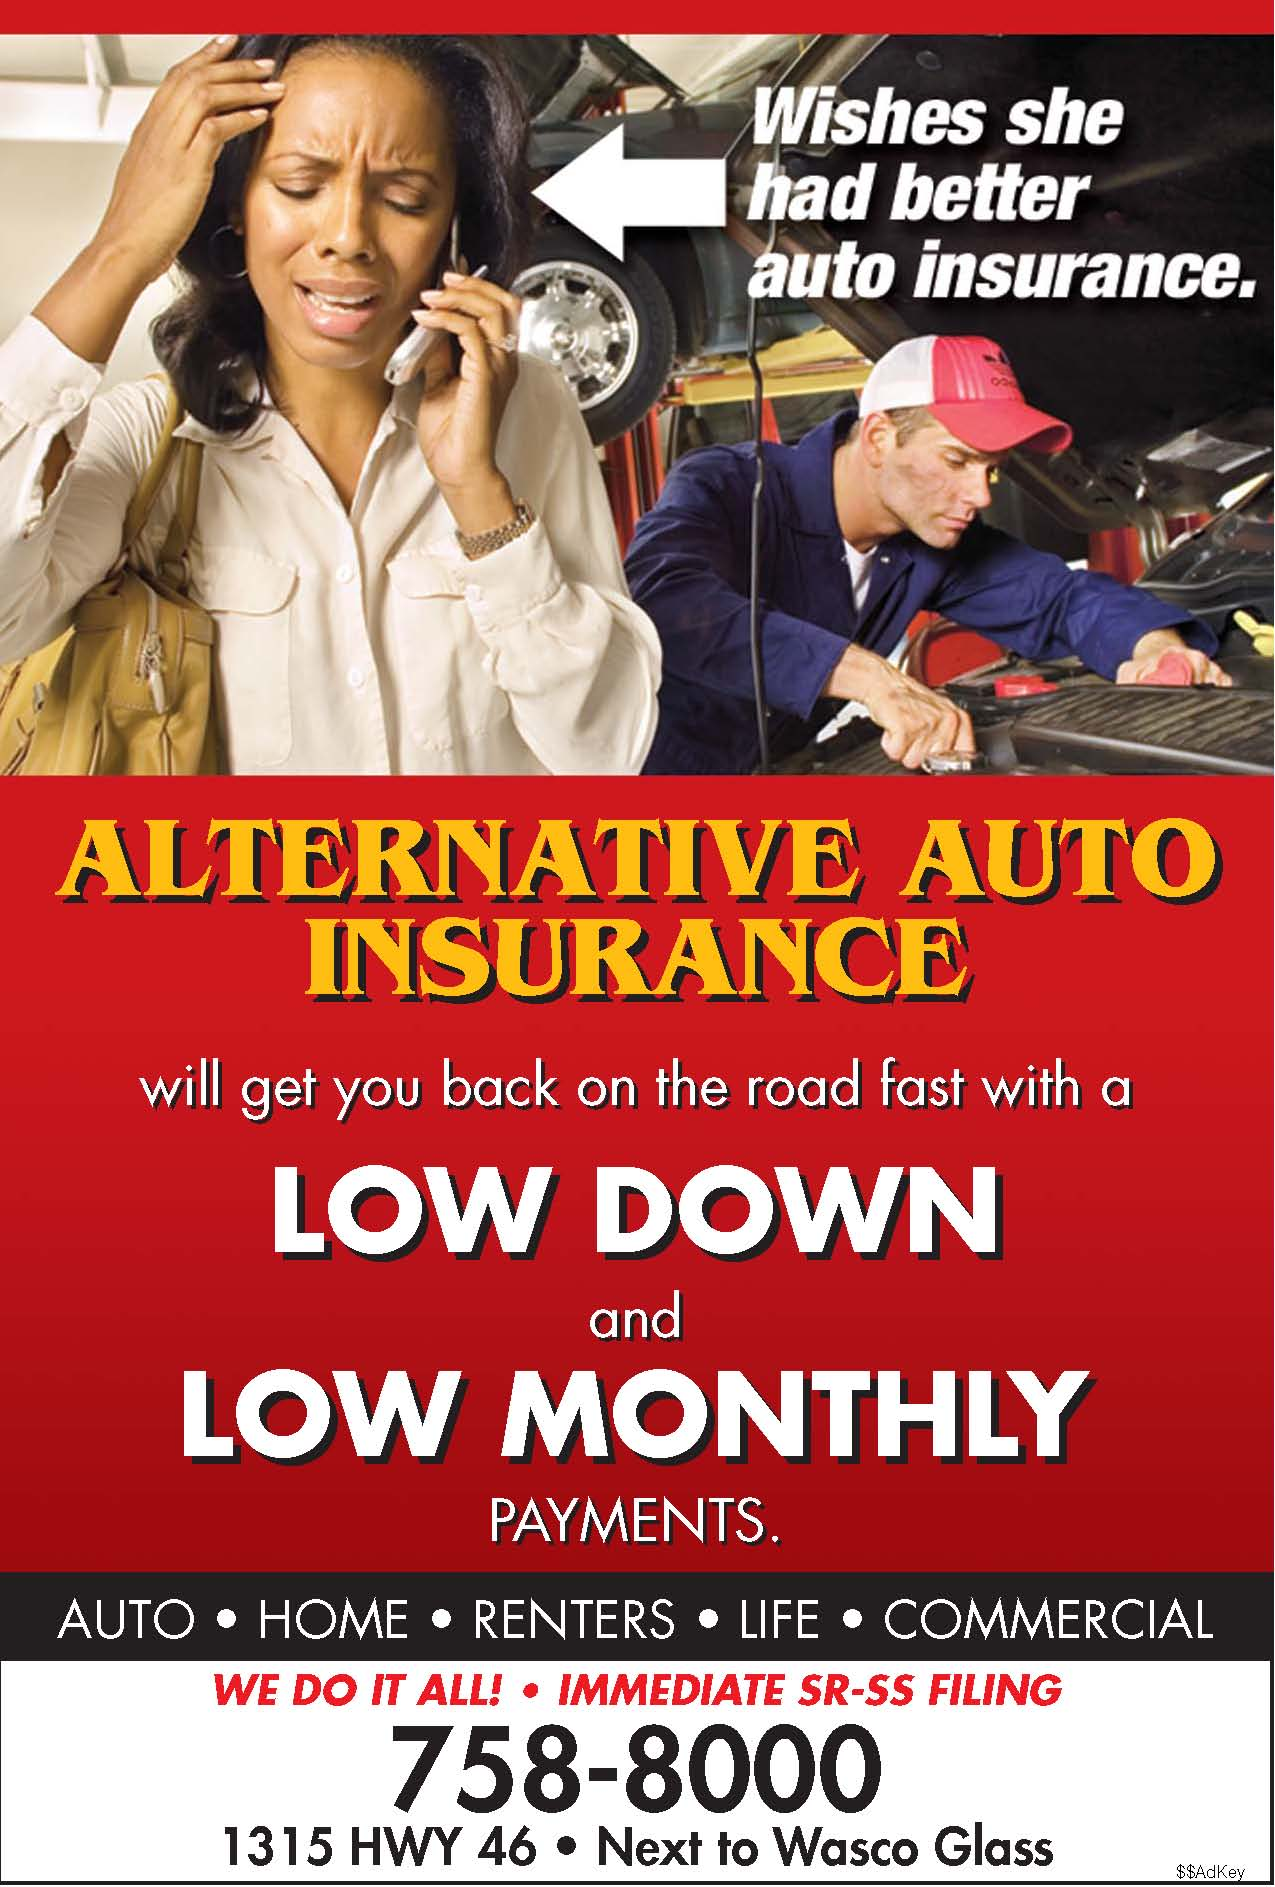 Welcome To Alternative Auto Insurance. Bring Your Own Device Voip Storage Tucson Az. New York Film Academy Logo Muy Thai Training. What Is Hospitality And Tourism. Satelliteguys Dish Network Top Hris Software. Online Astronomy Degrees Art School Sculpture. Home Loans For Bankruptcy M S In Psychology. Checks For Quickbooks Online. Security Guard Companies In San Diego